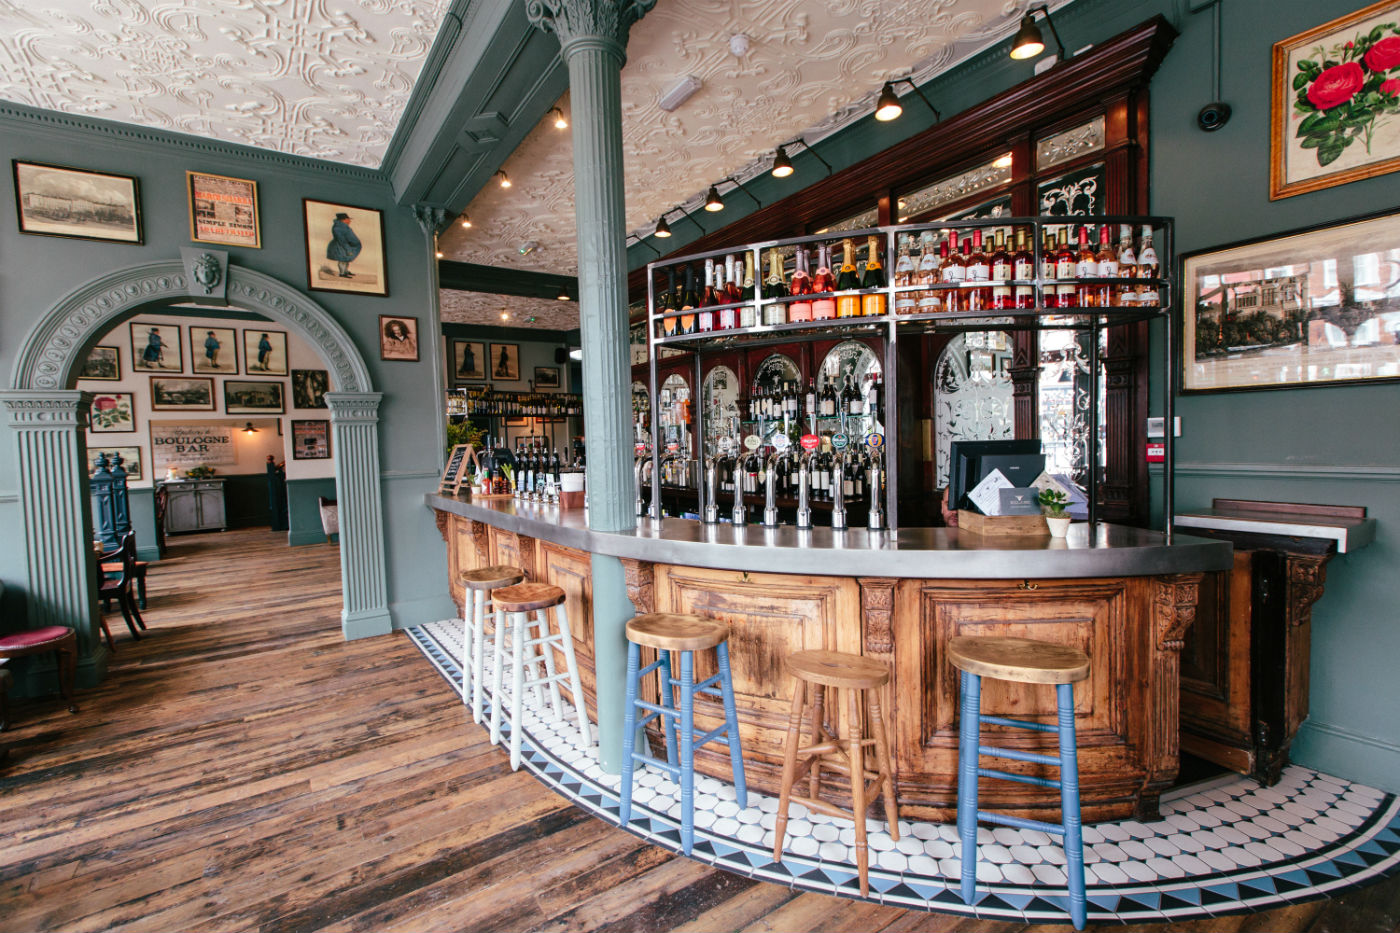 The main bar area as it is now after relaunching as a pub, restaurant and cocktail bar in April 2015. Photo: Young's